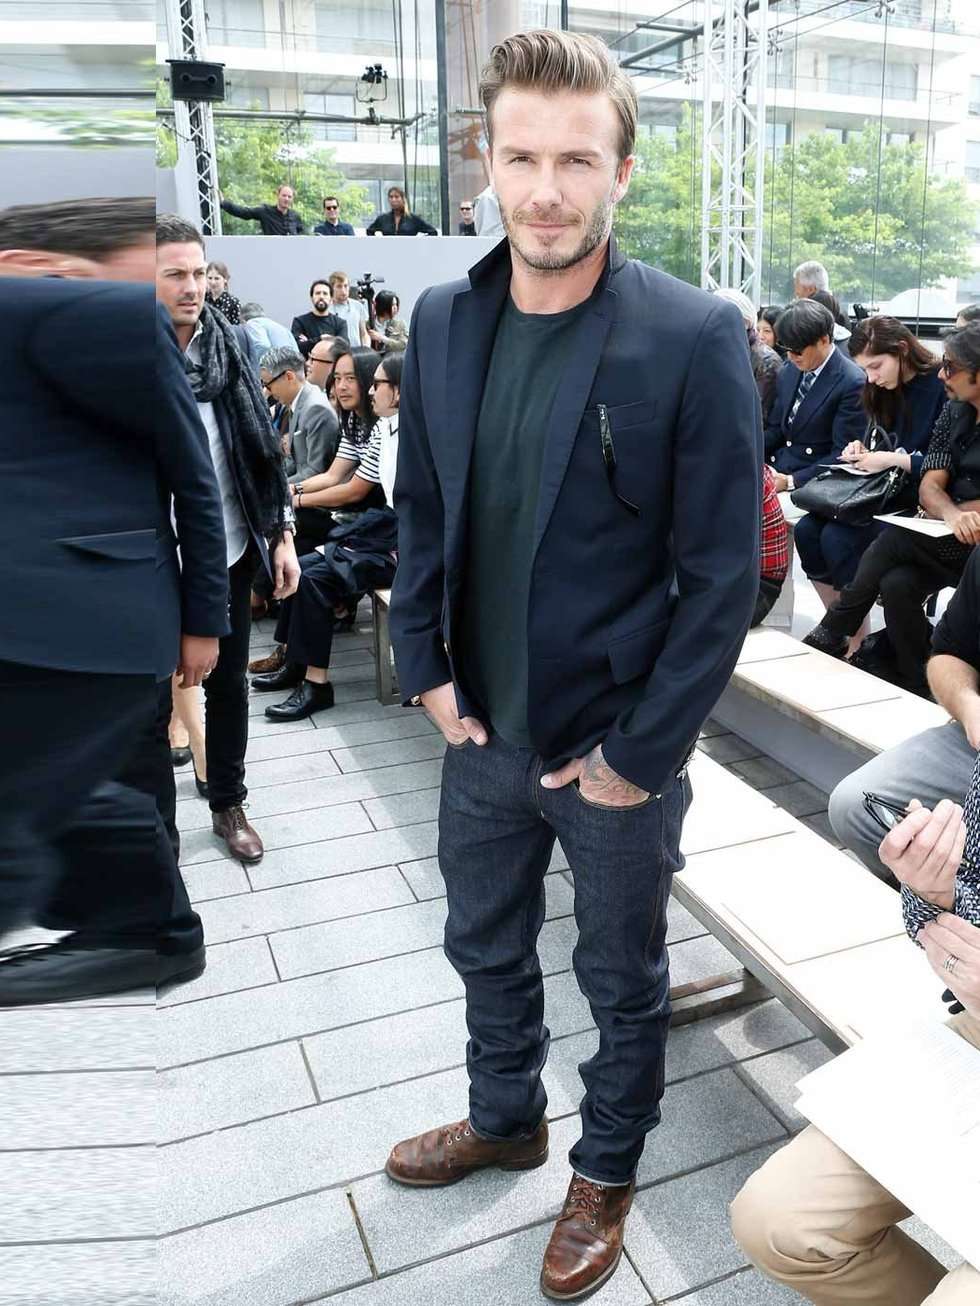 David Beckham Dressing Style 2013 Images Galleries With A Bite